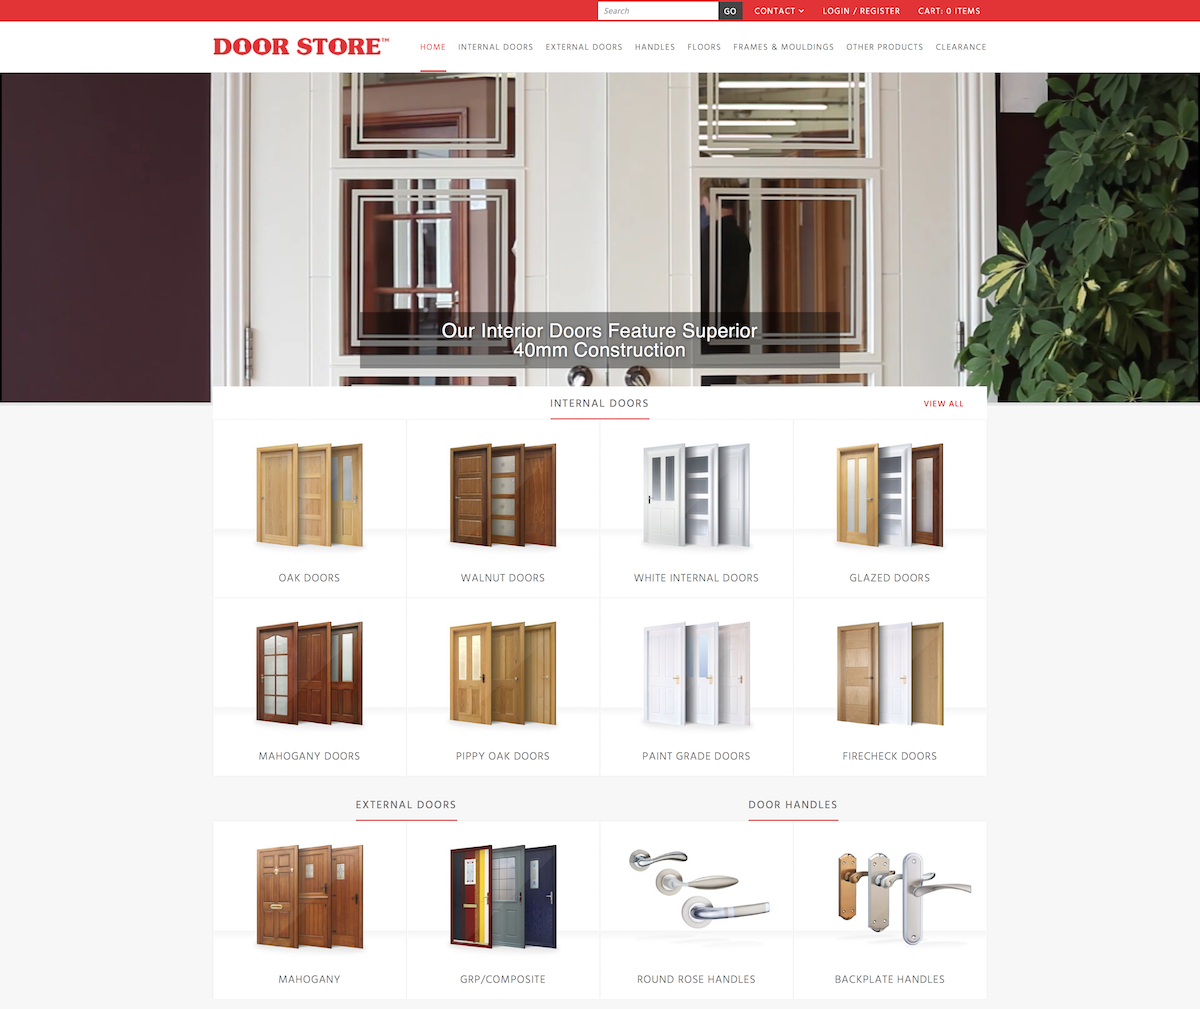 Doors, Interior doors & External doors | The Door Store UK